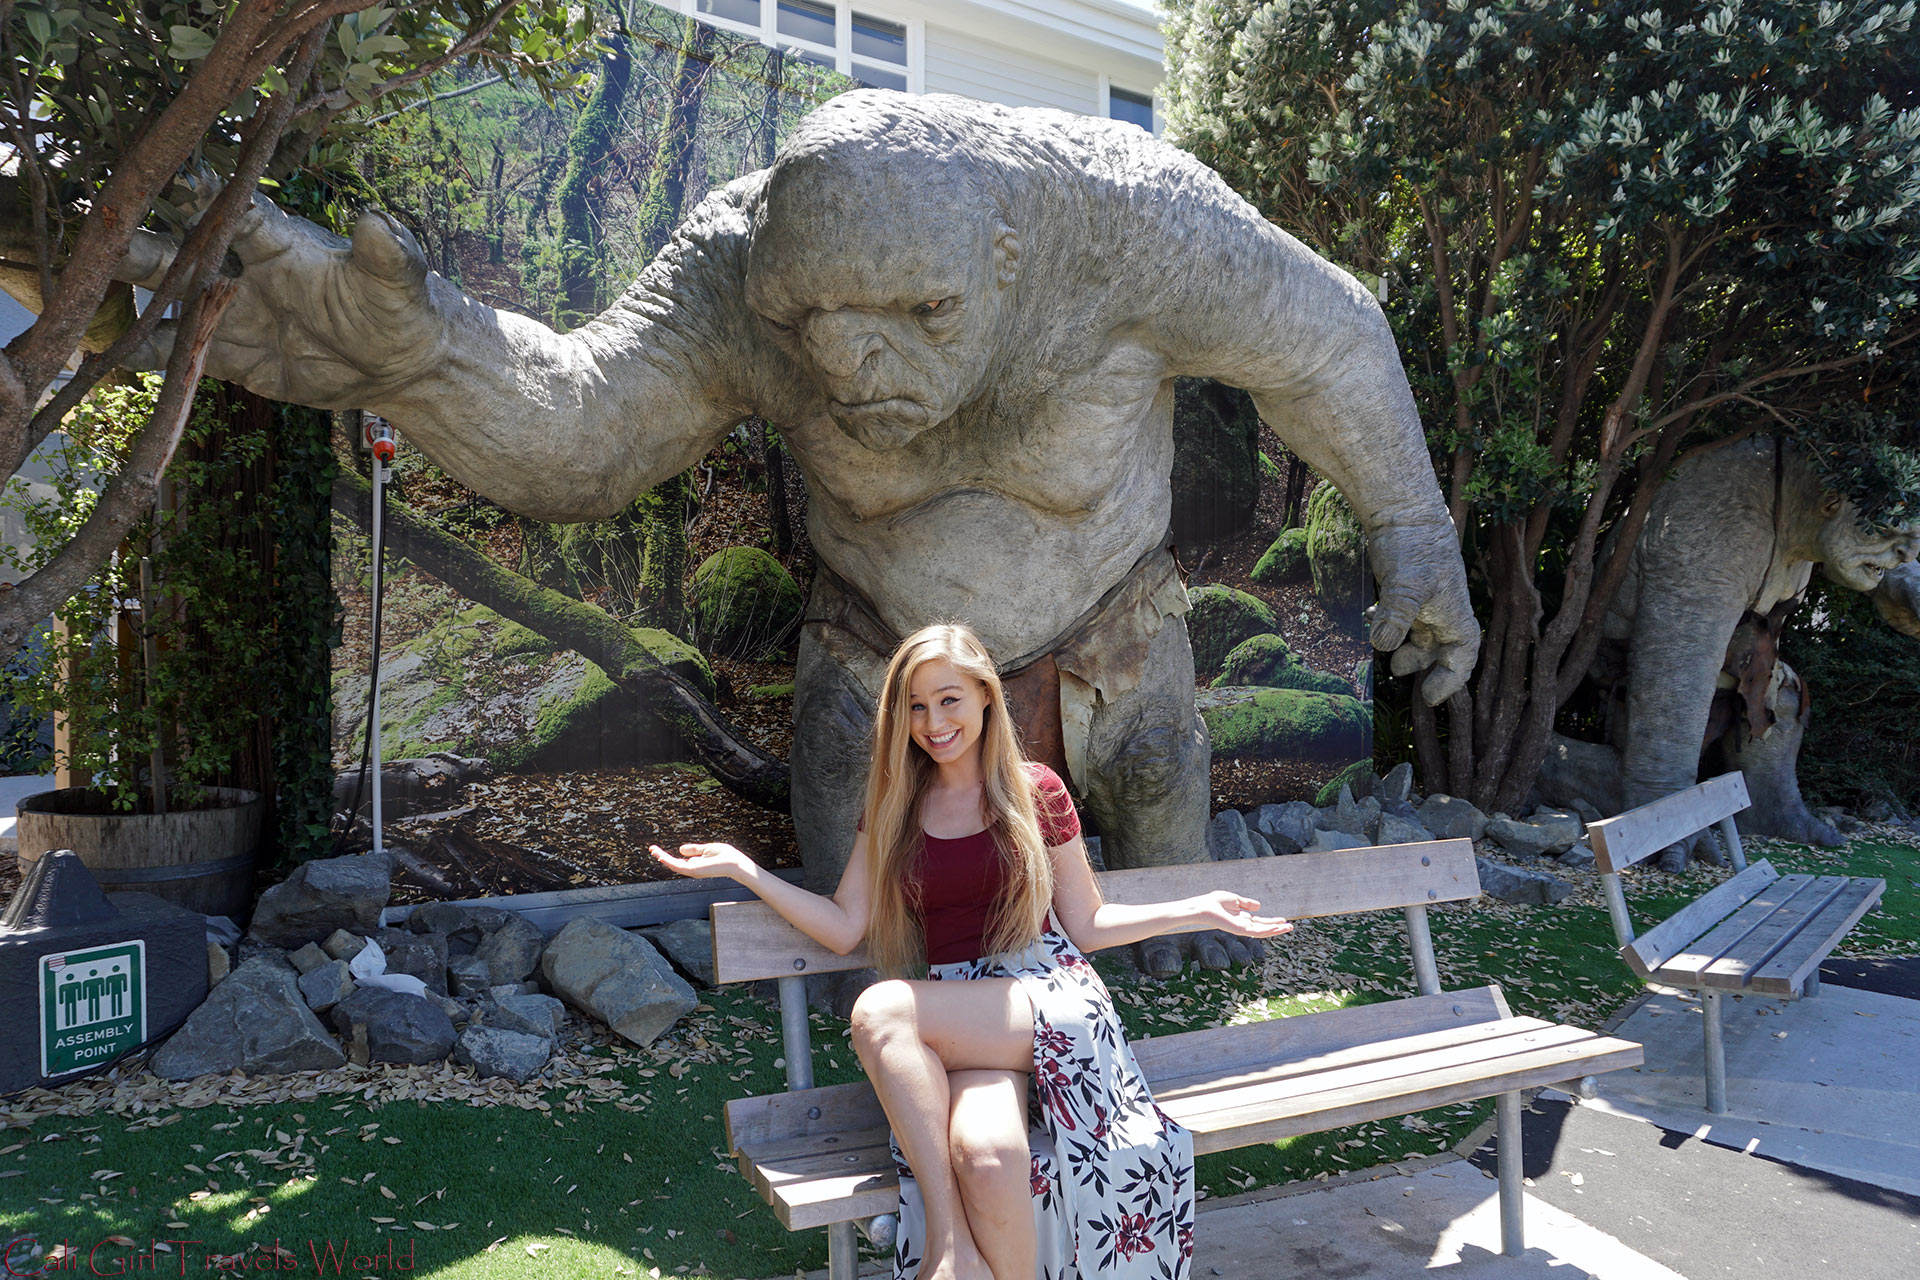 Sitting under a massive troll outside of Weta Cave Studios in Wellington, New Zealand